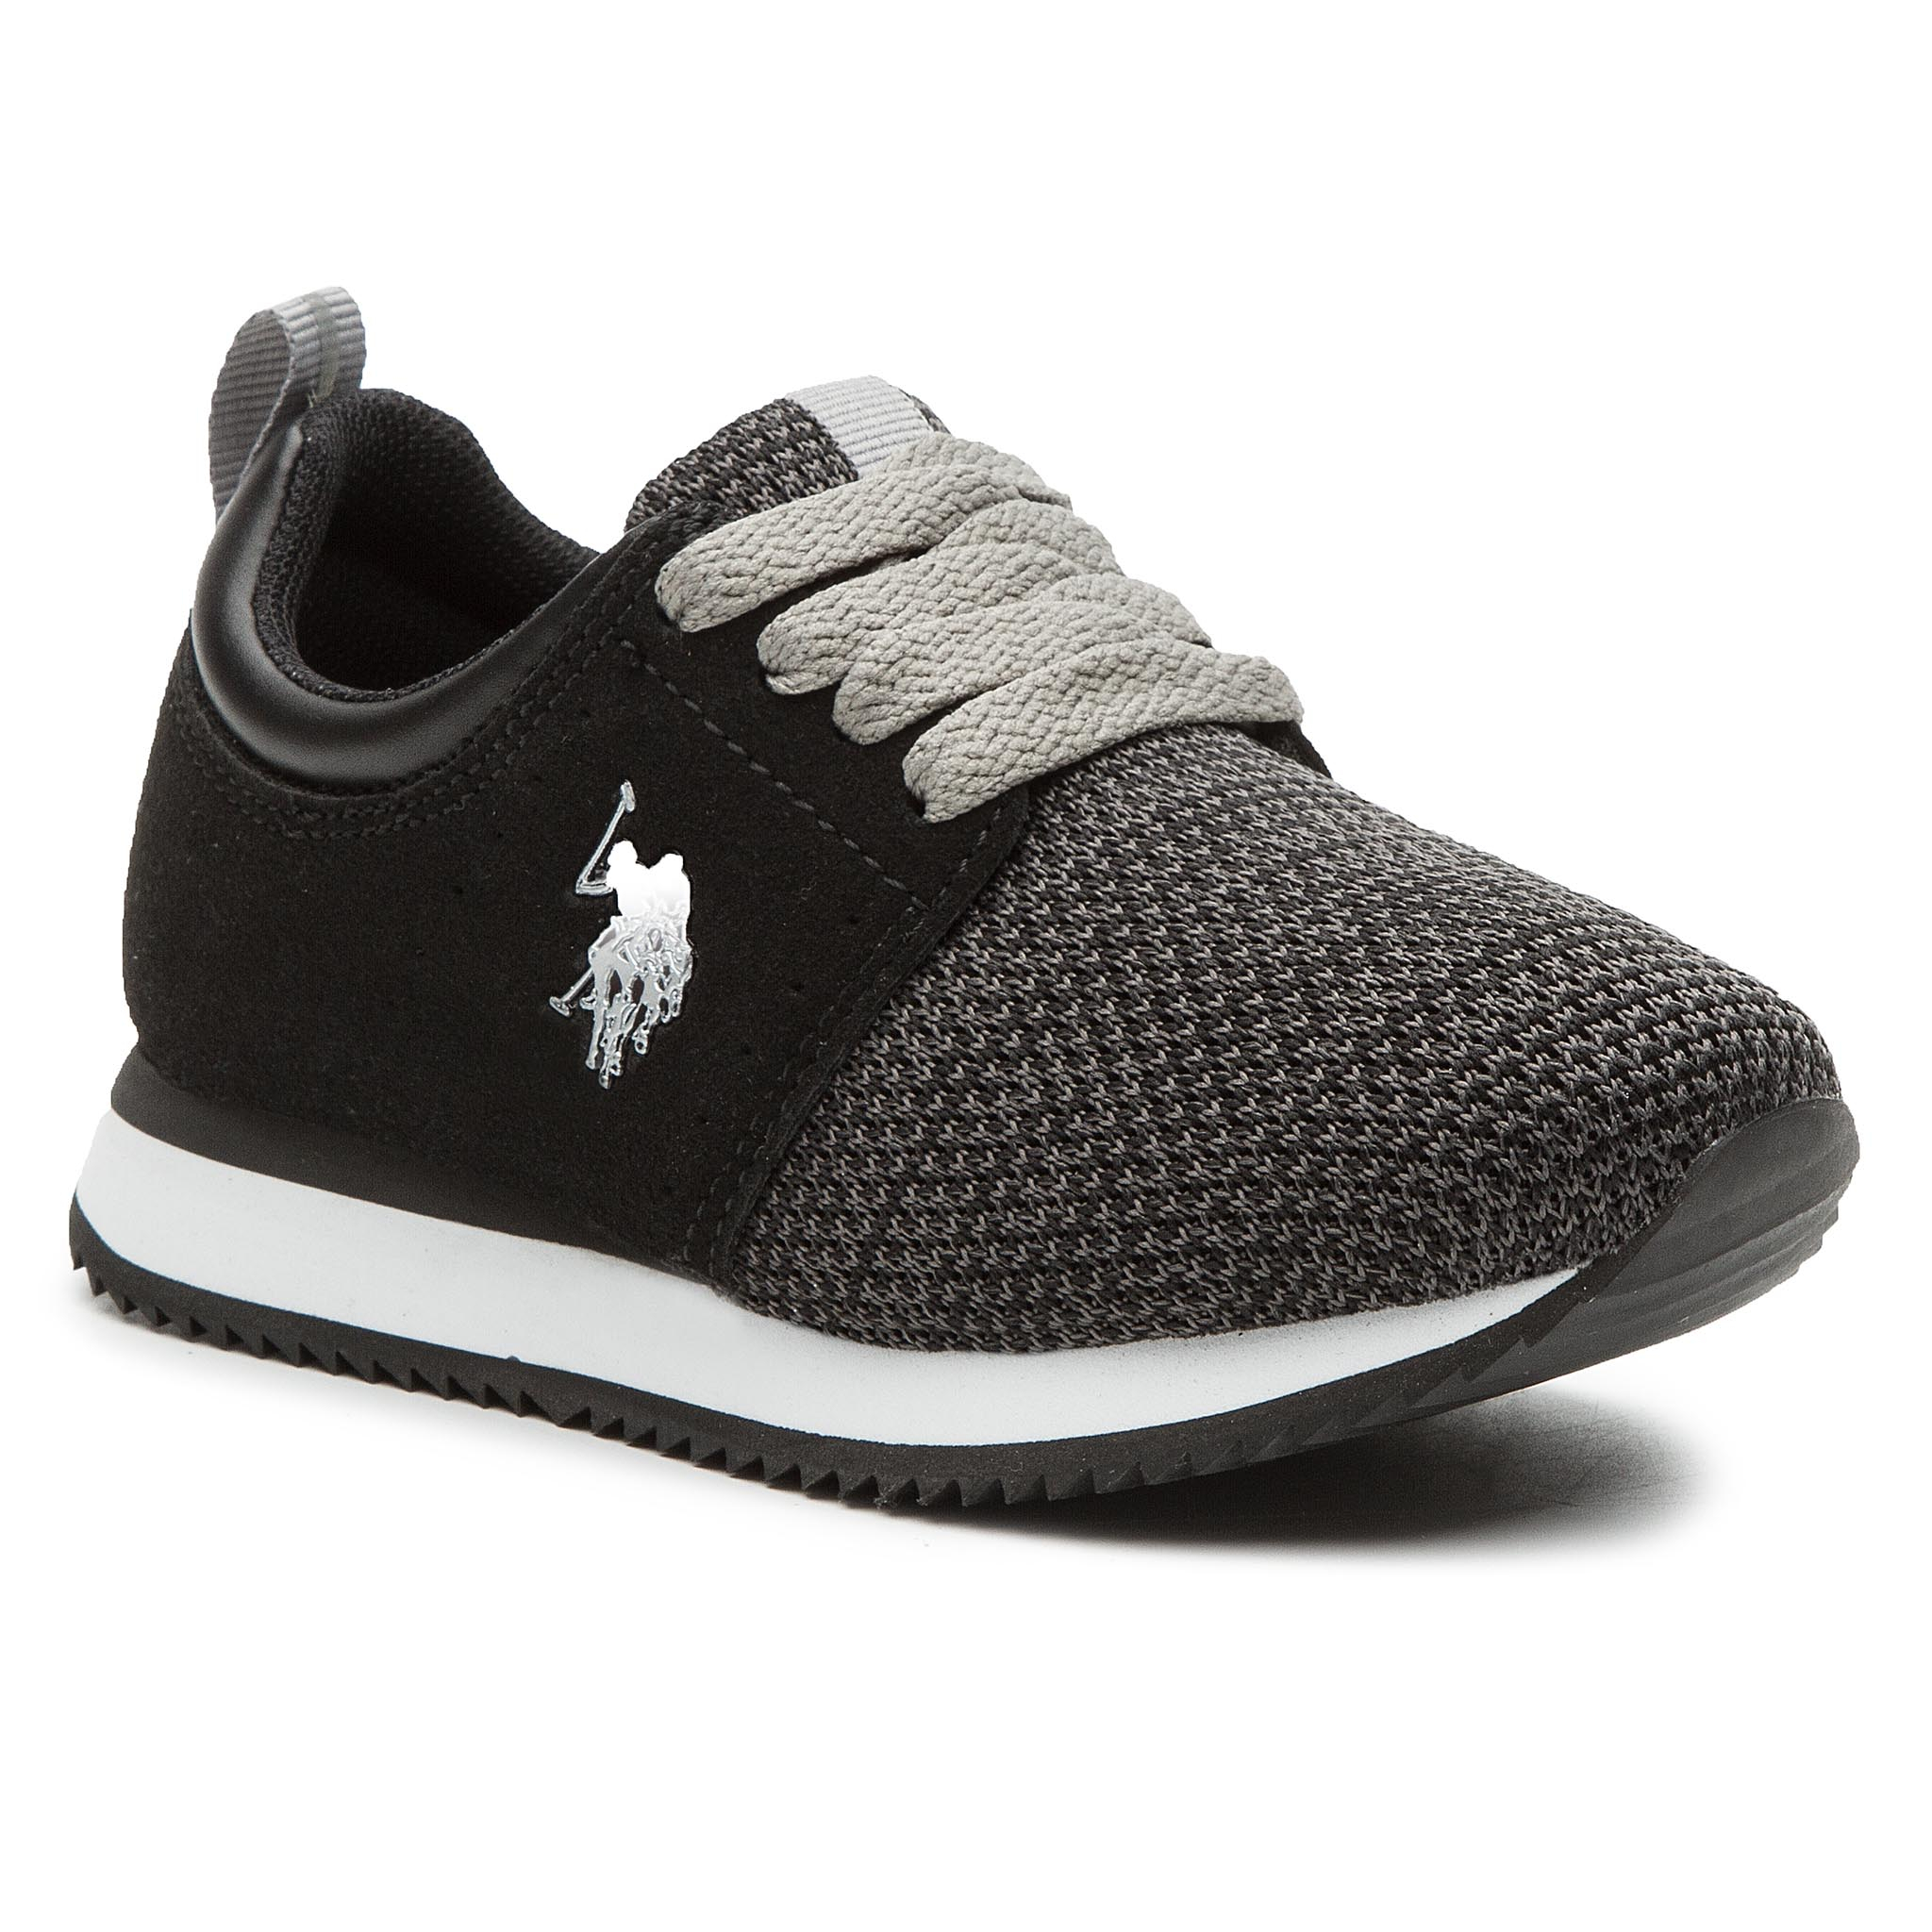 Sneakersy U.S. POLO ASSN. - Andres NOBIK4100S9/TY1 Blk